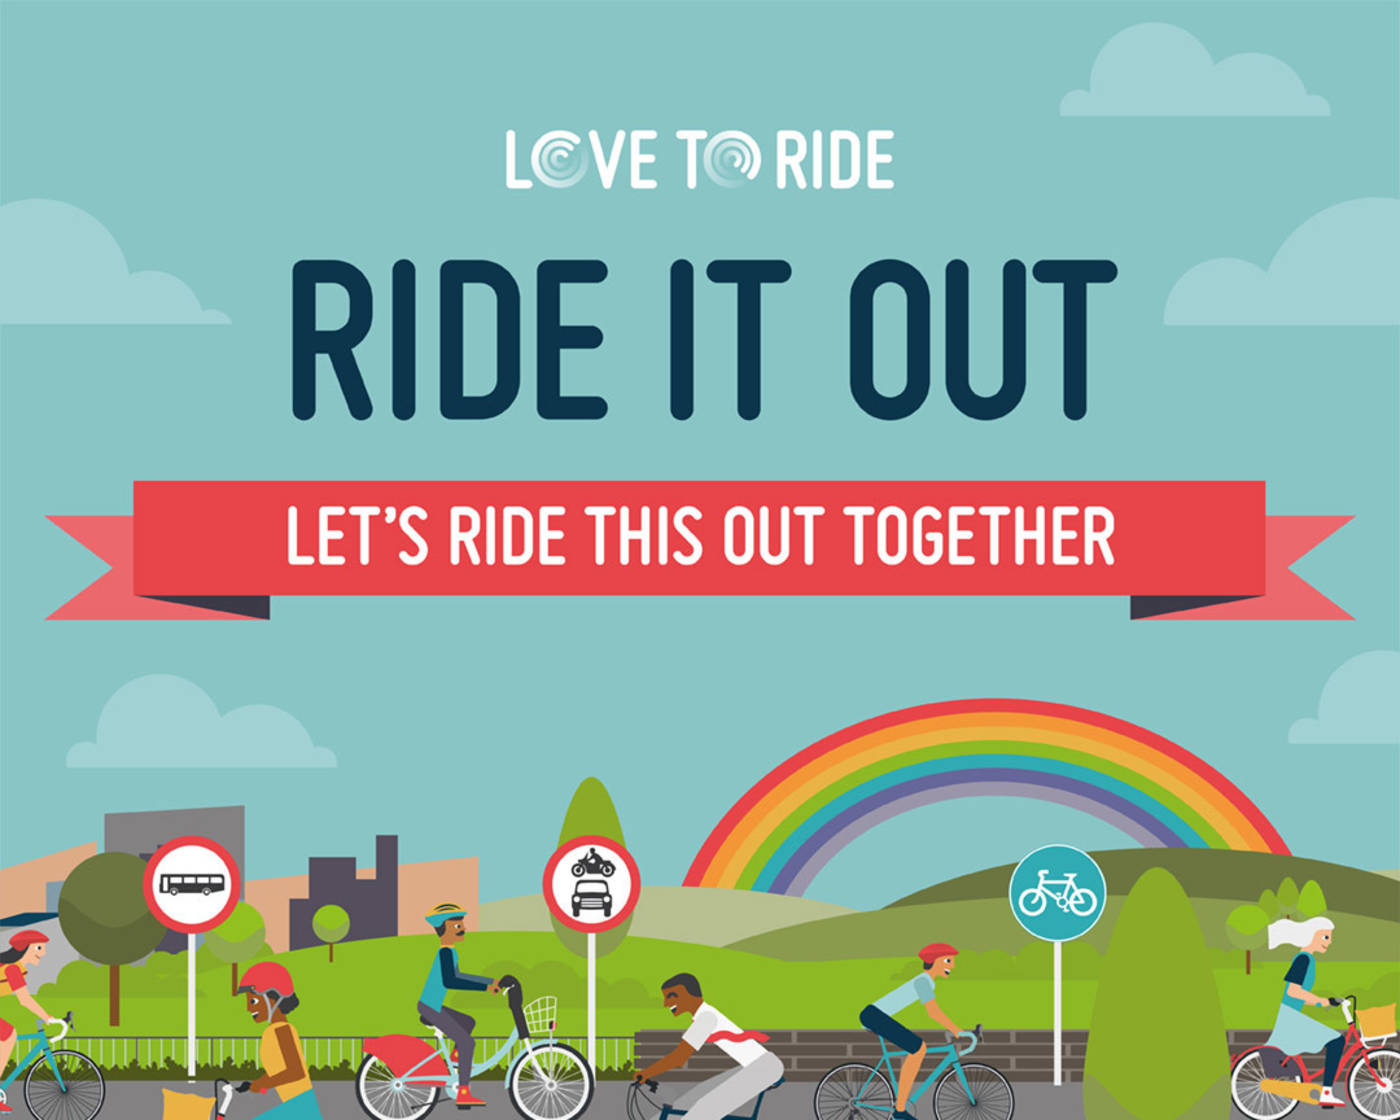 Love to ride logo and 'ride it out' message